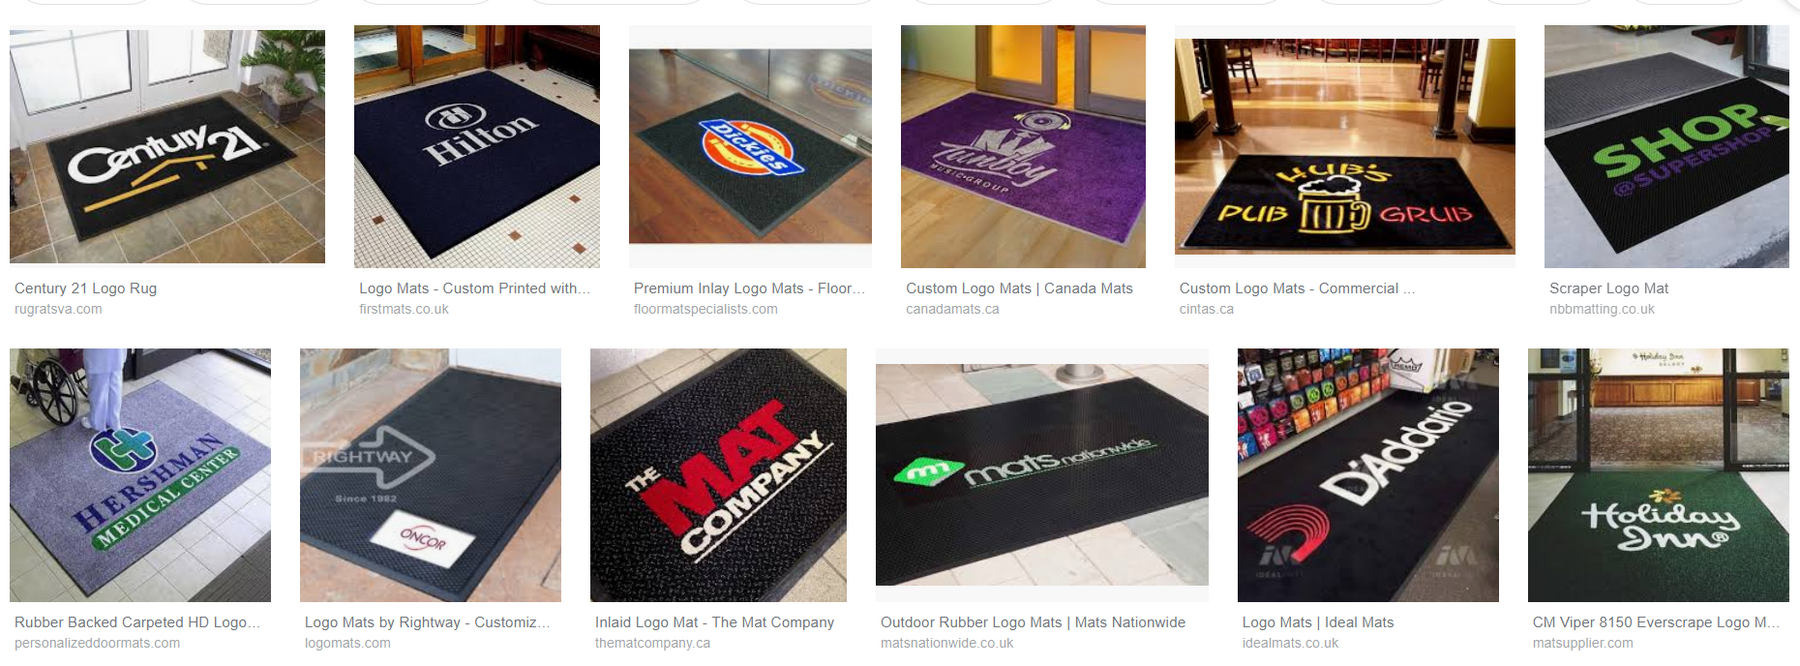 Why should commercial mats have a logo?